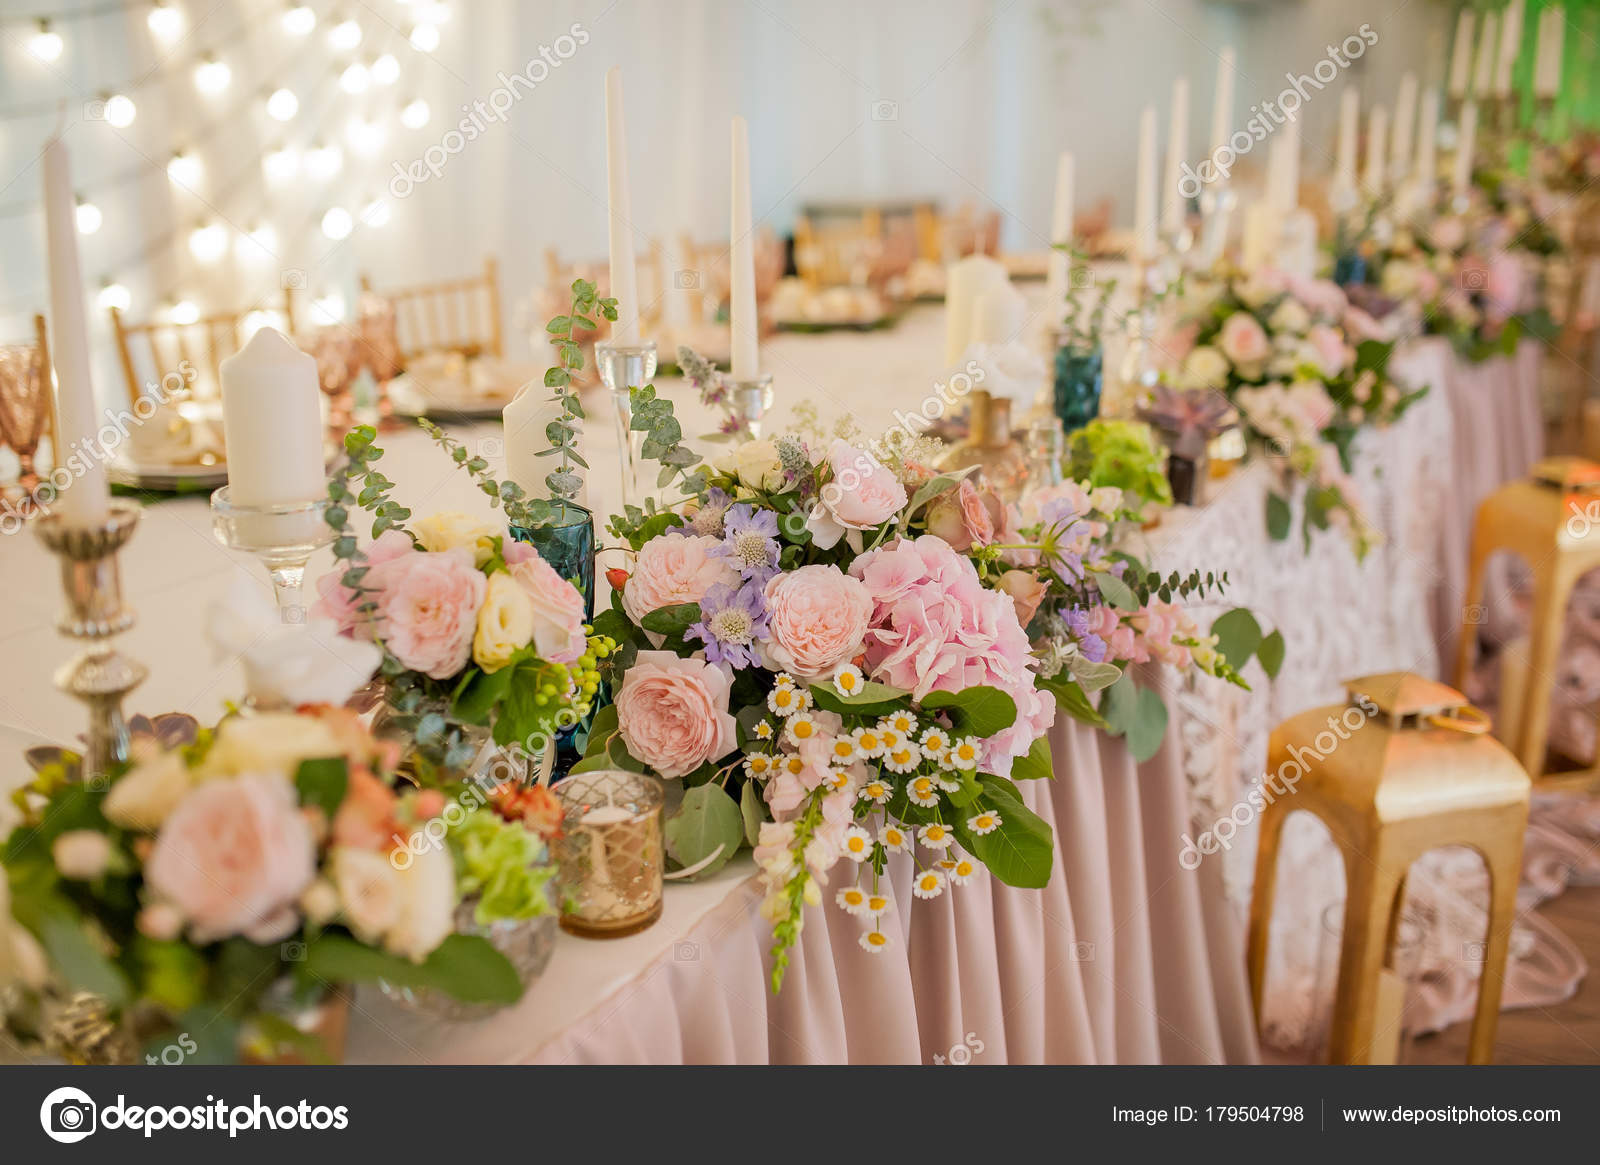 Flores de decorao de casamento stock photo kiriak09 179504798 flores de decorao de casamento fotografia de stock junglespirit Choice Image